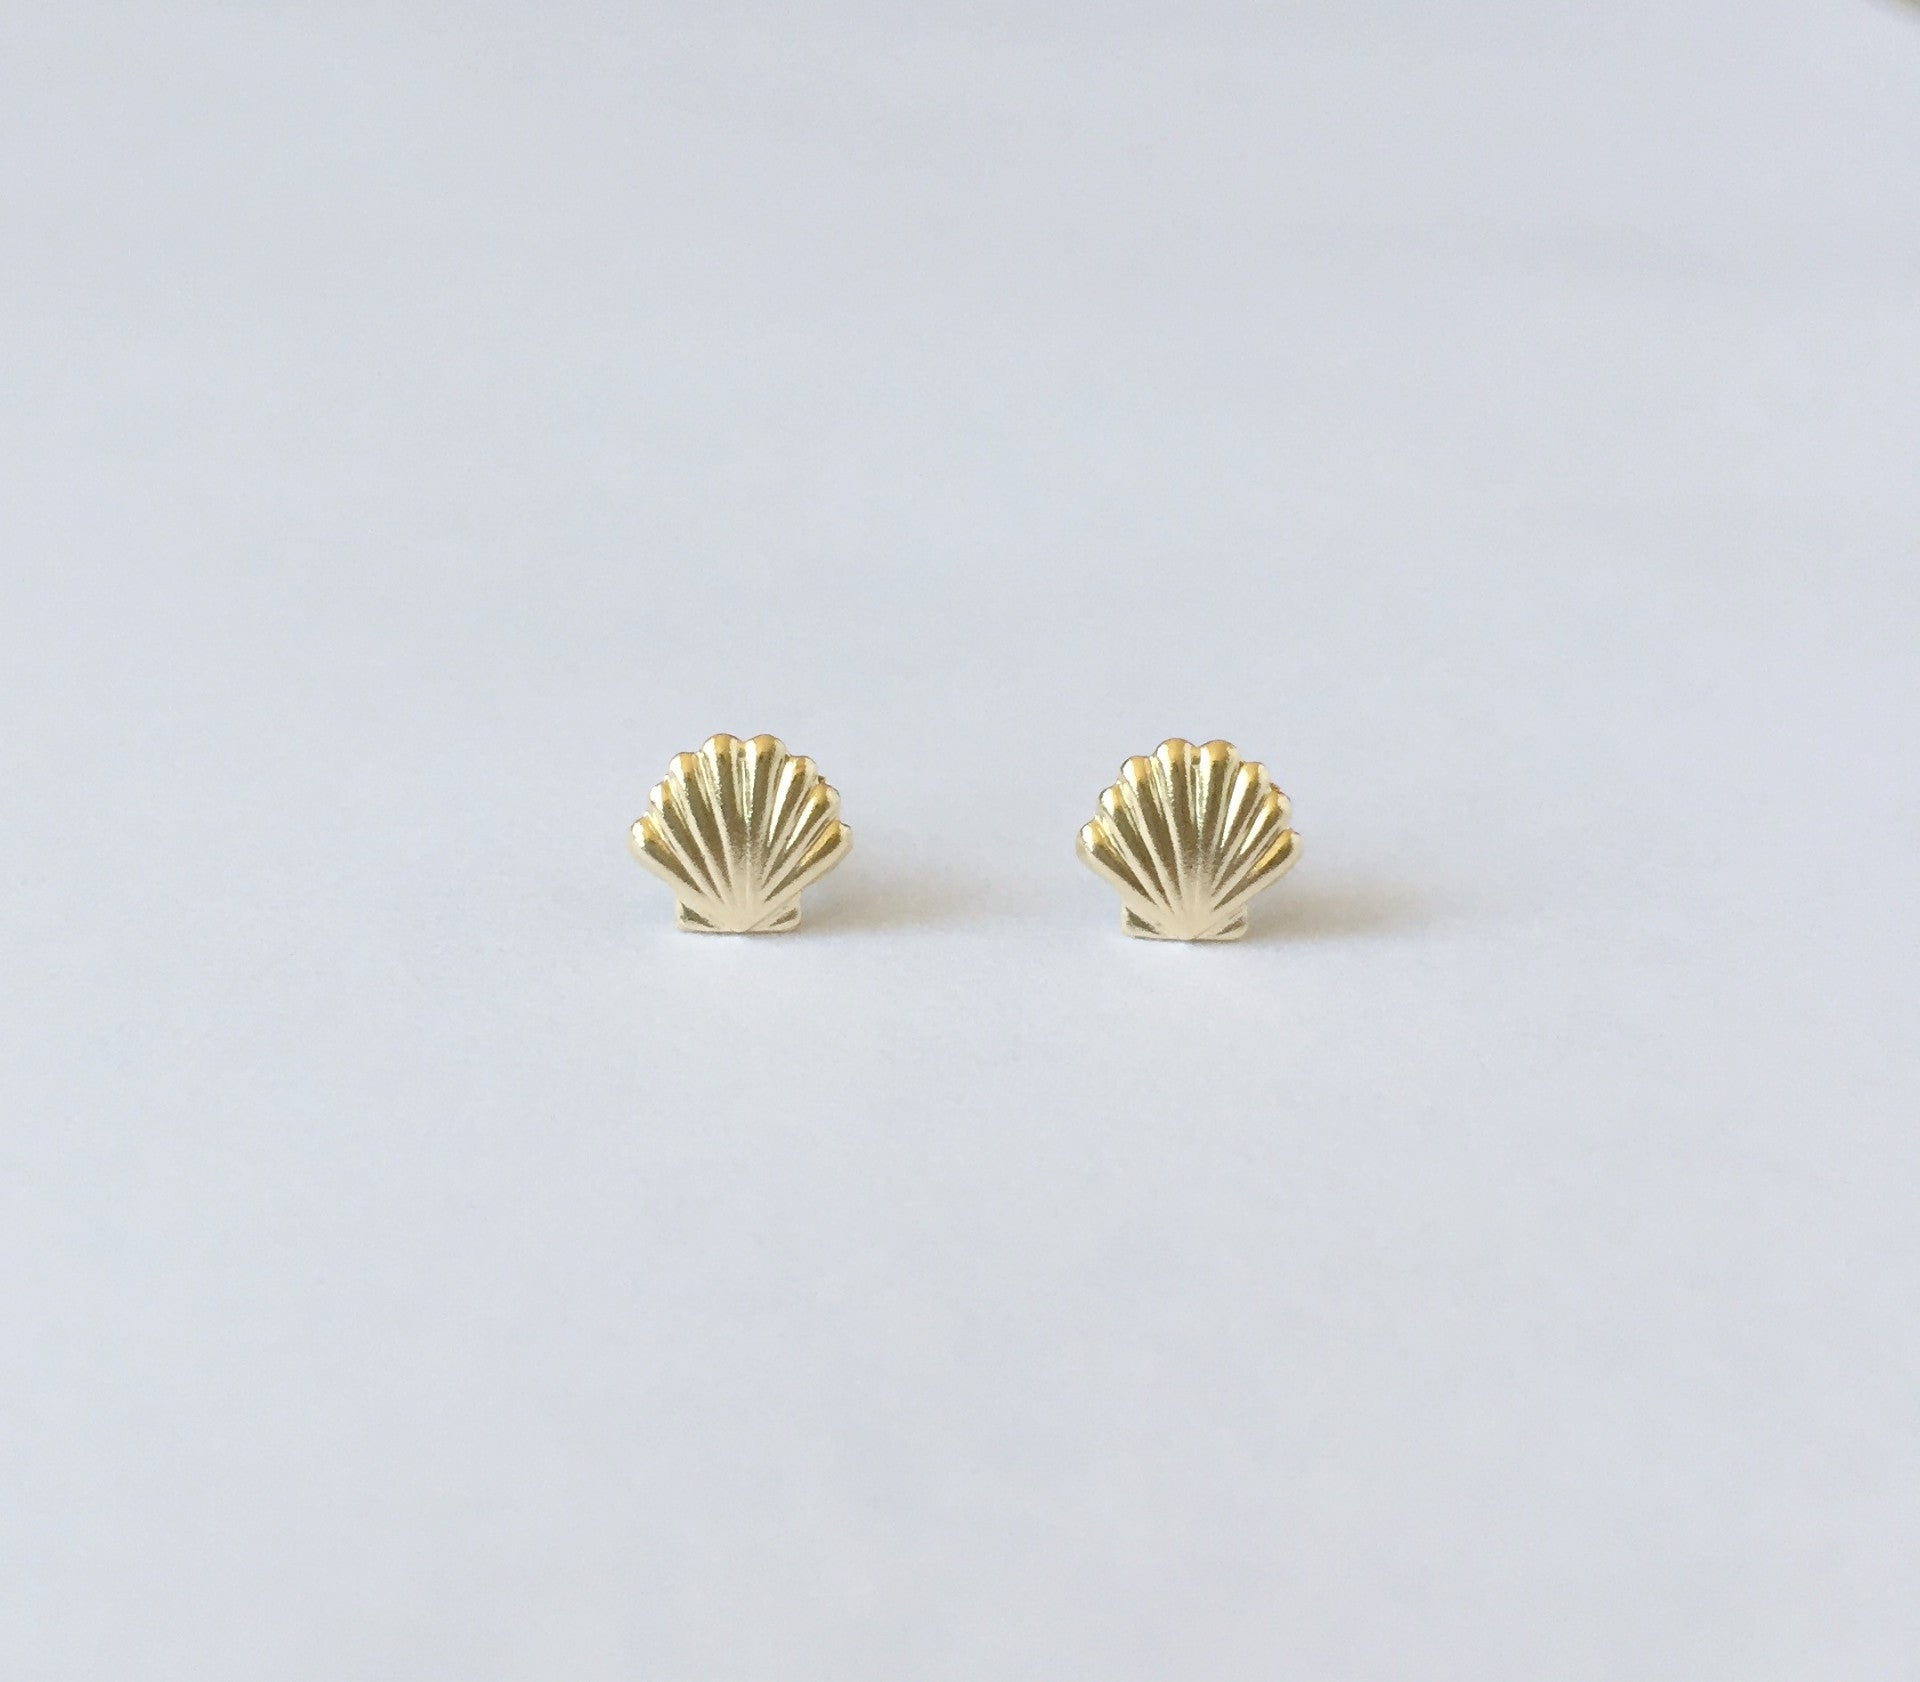 baby tear listing gold earrings small fullxfull drop zoom il stud tiny cry